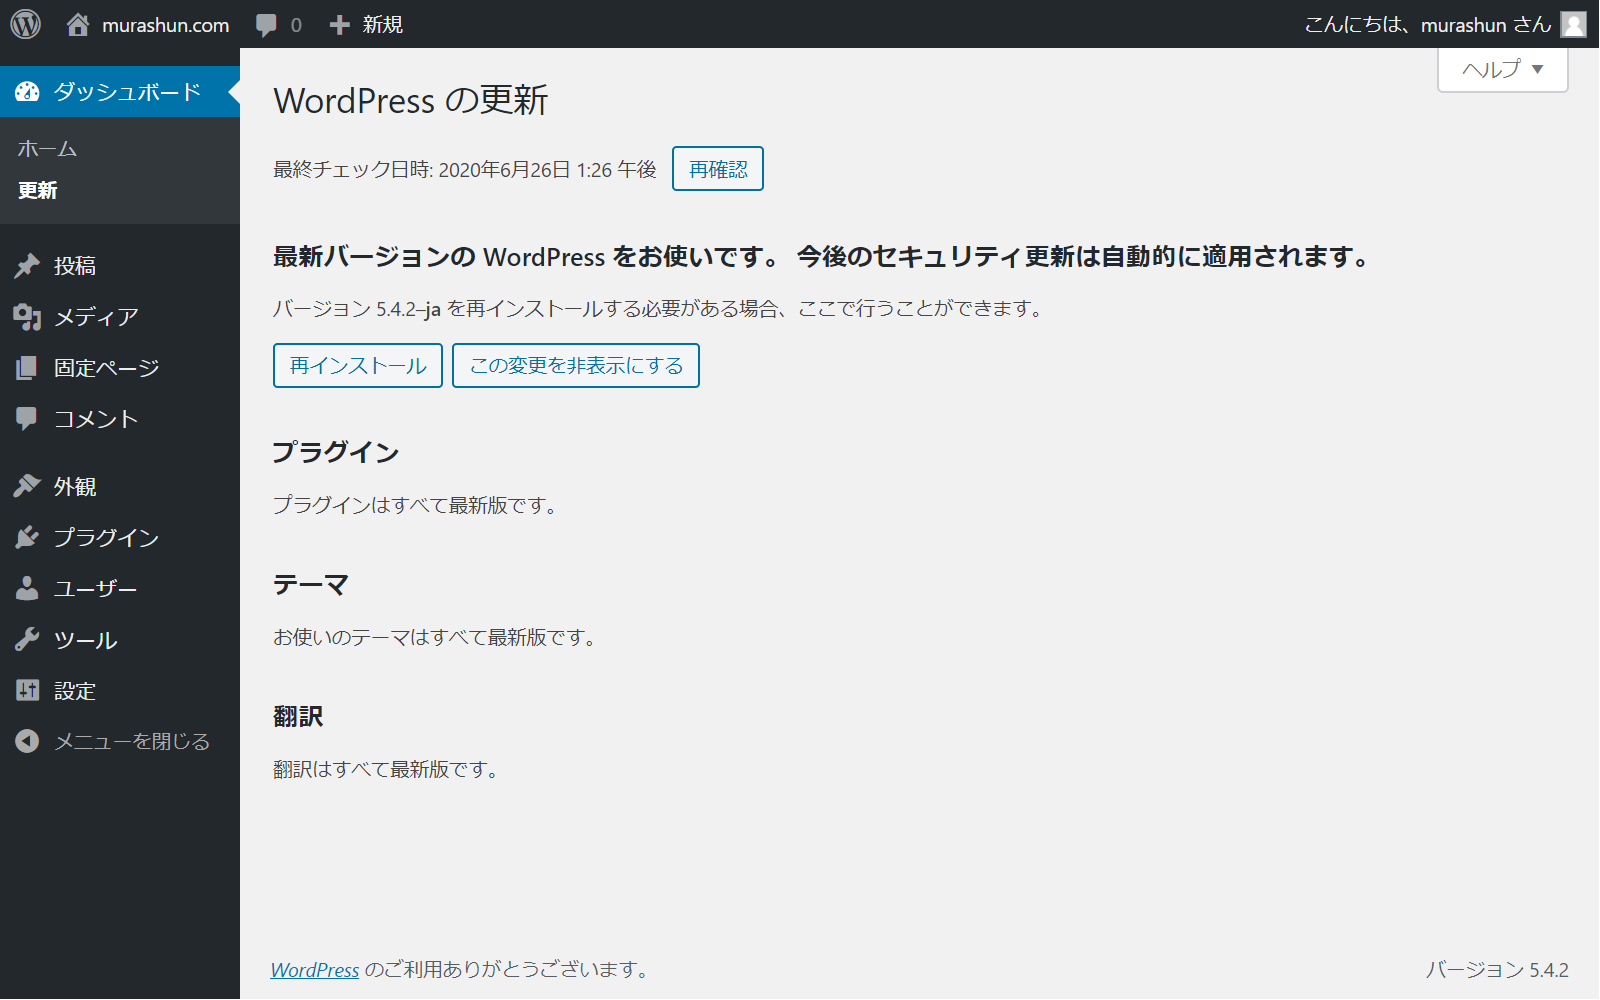 WordPress の更新